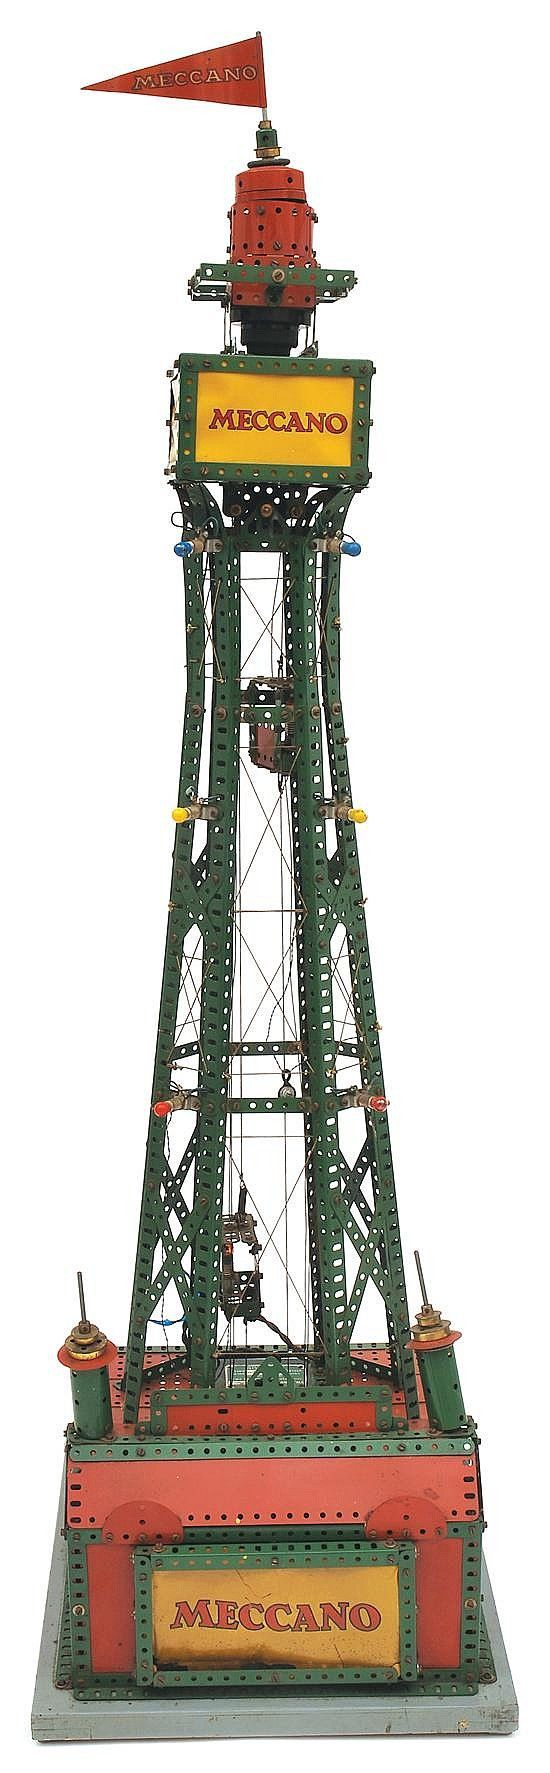 Meccano factory built window display model of Blackpool Tower,… - Building Sets/Leggo/Mechano - Toys & Models - Carter's Price Guide to Antiques and Collectables